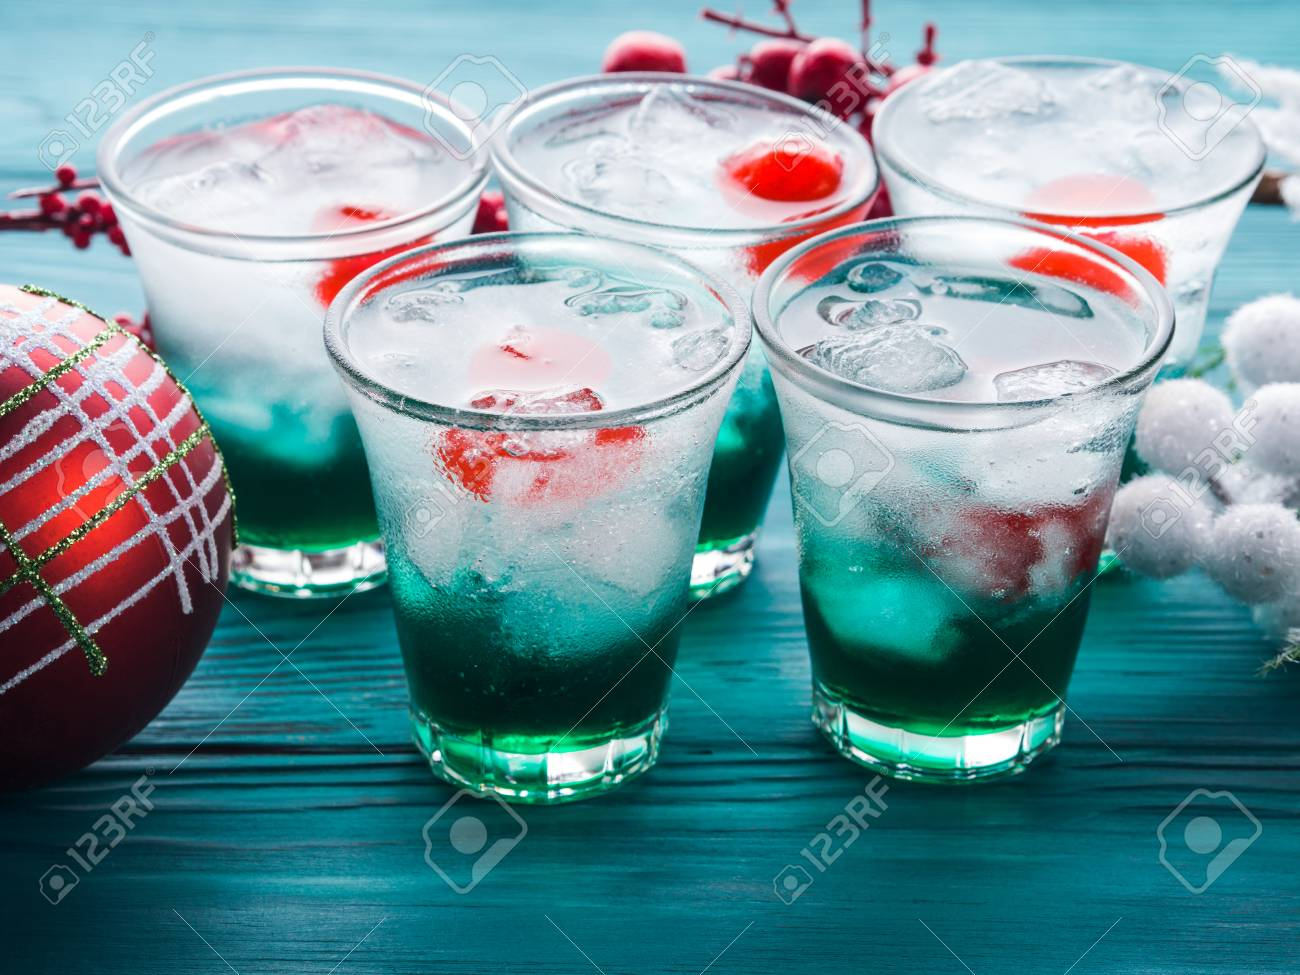 Christmas Alcoholic Drinks.Christmas Holiday Party Green Alcohol Drinks With Cherry Festive